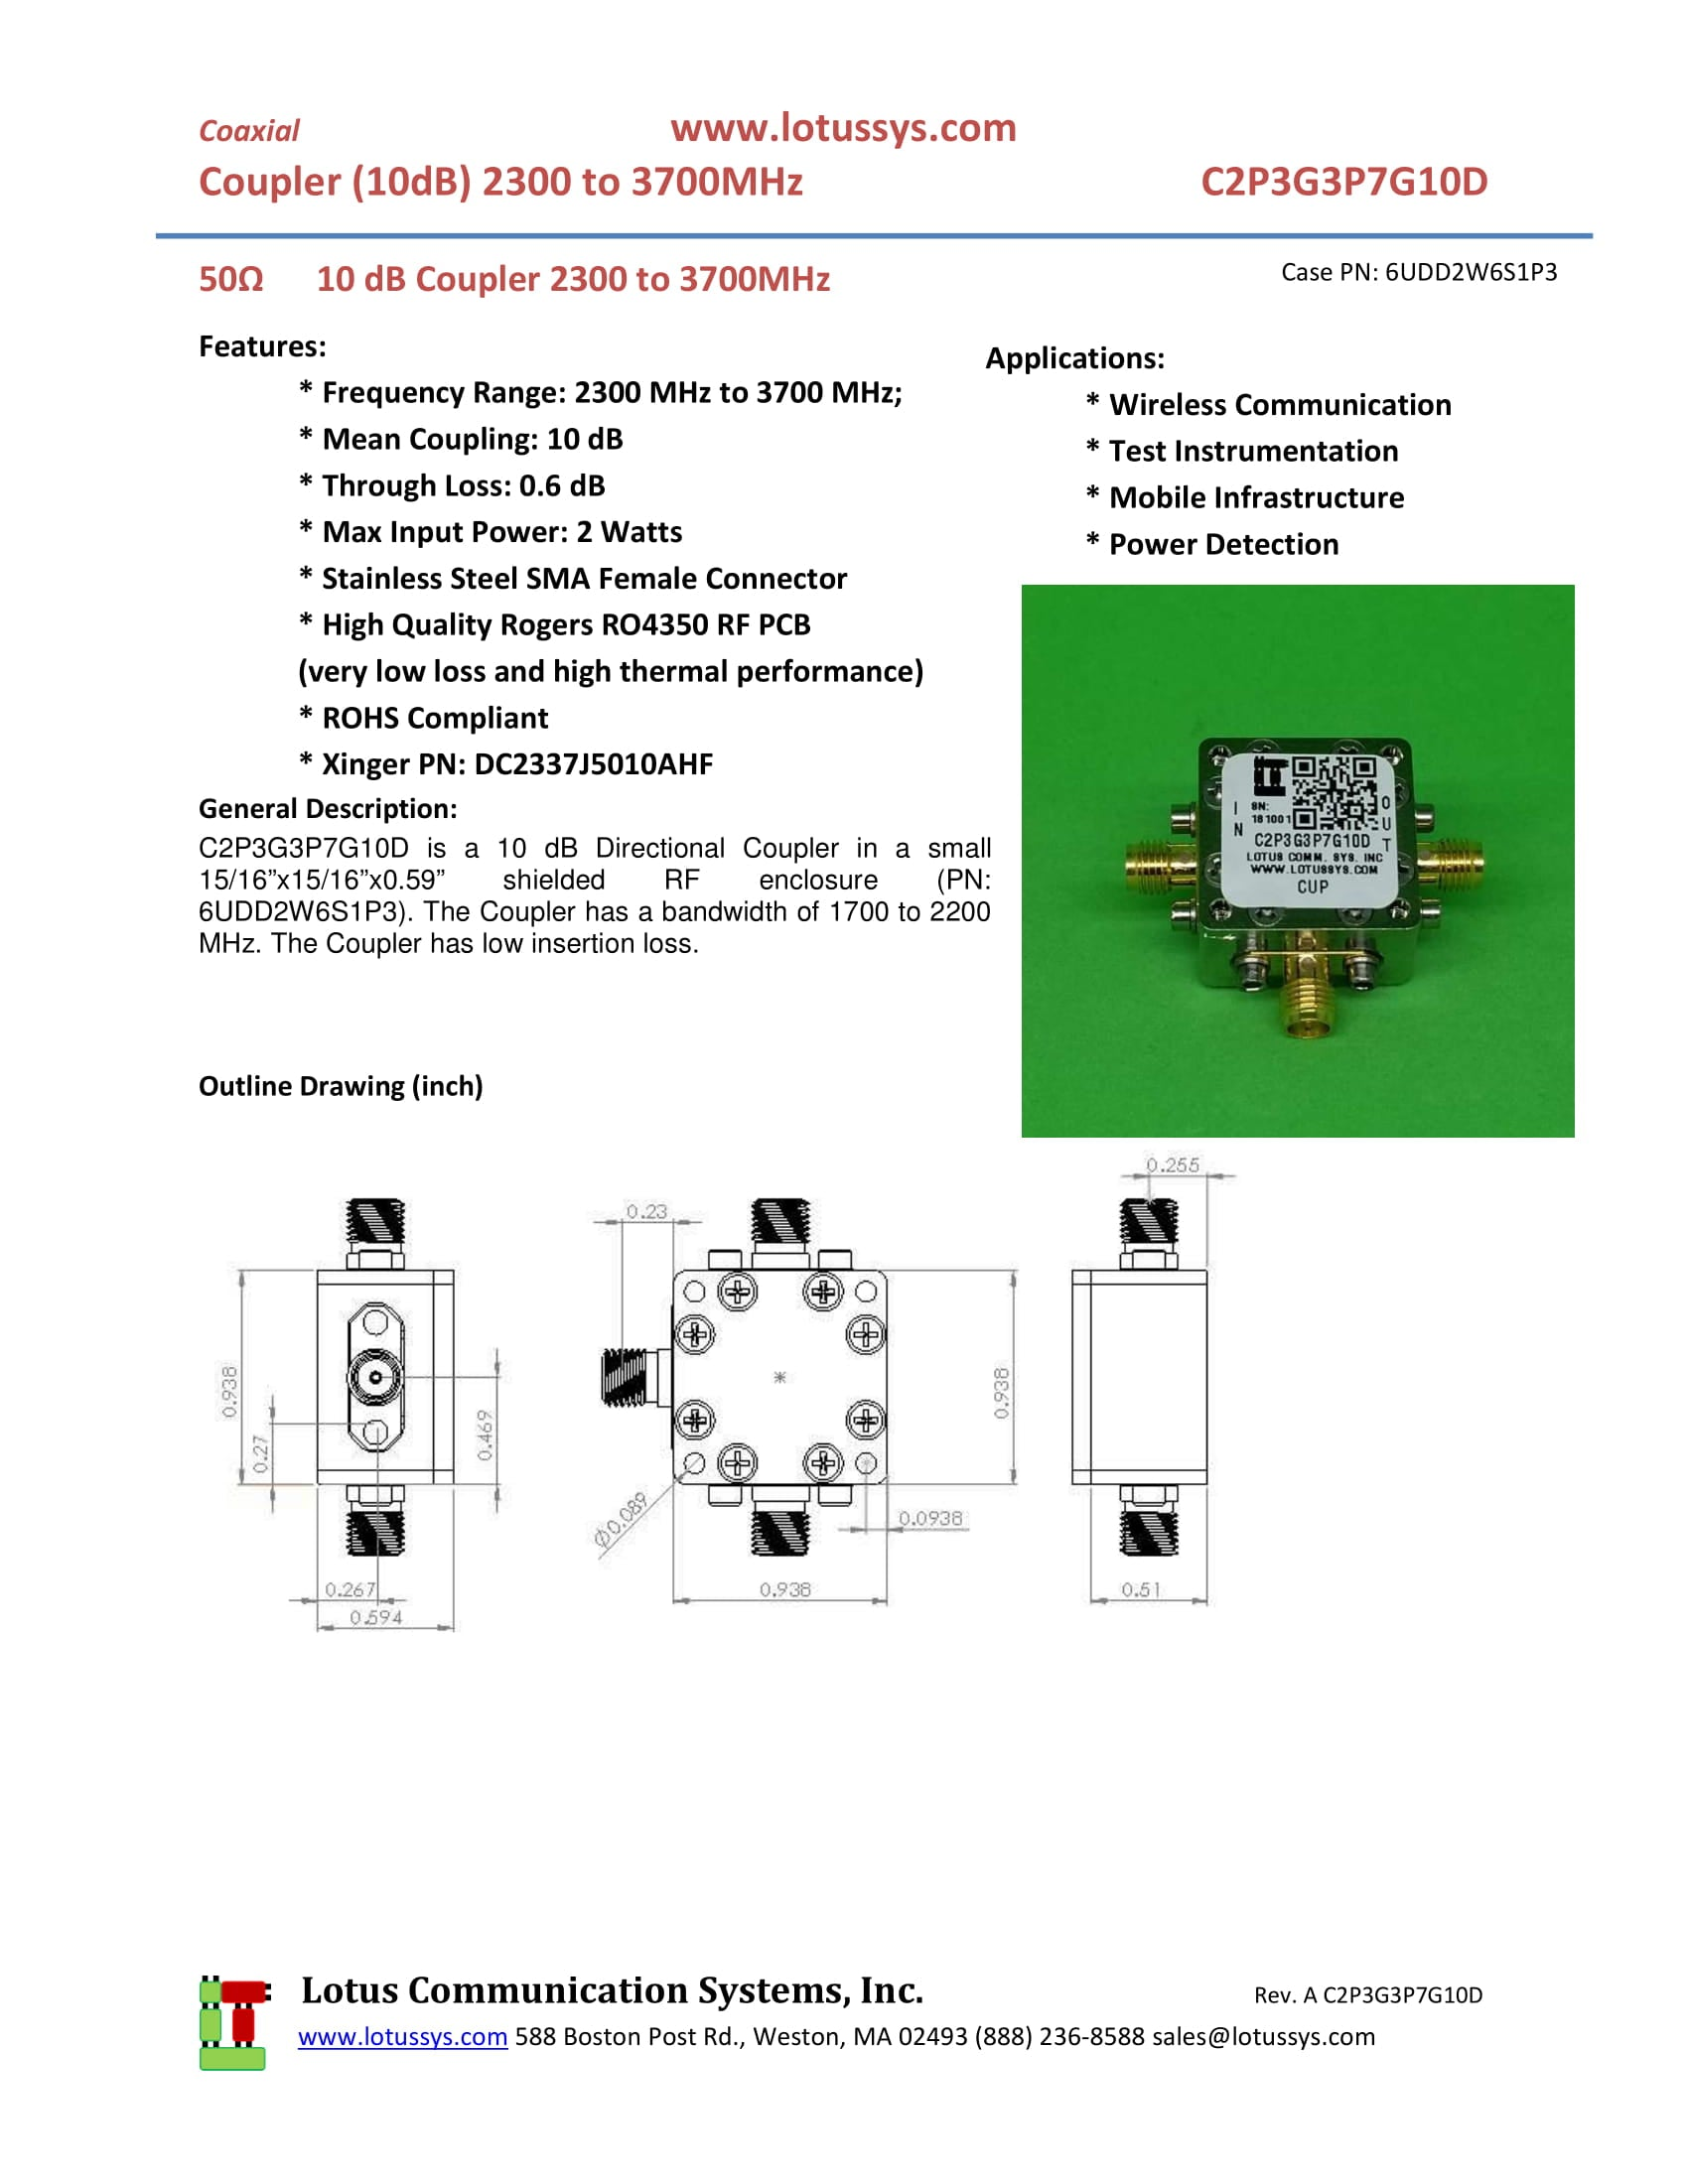 Directional Coupler 2 3 GHz to 3 7 GHz 10dB 2W Low Insertion Loss